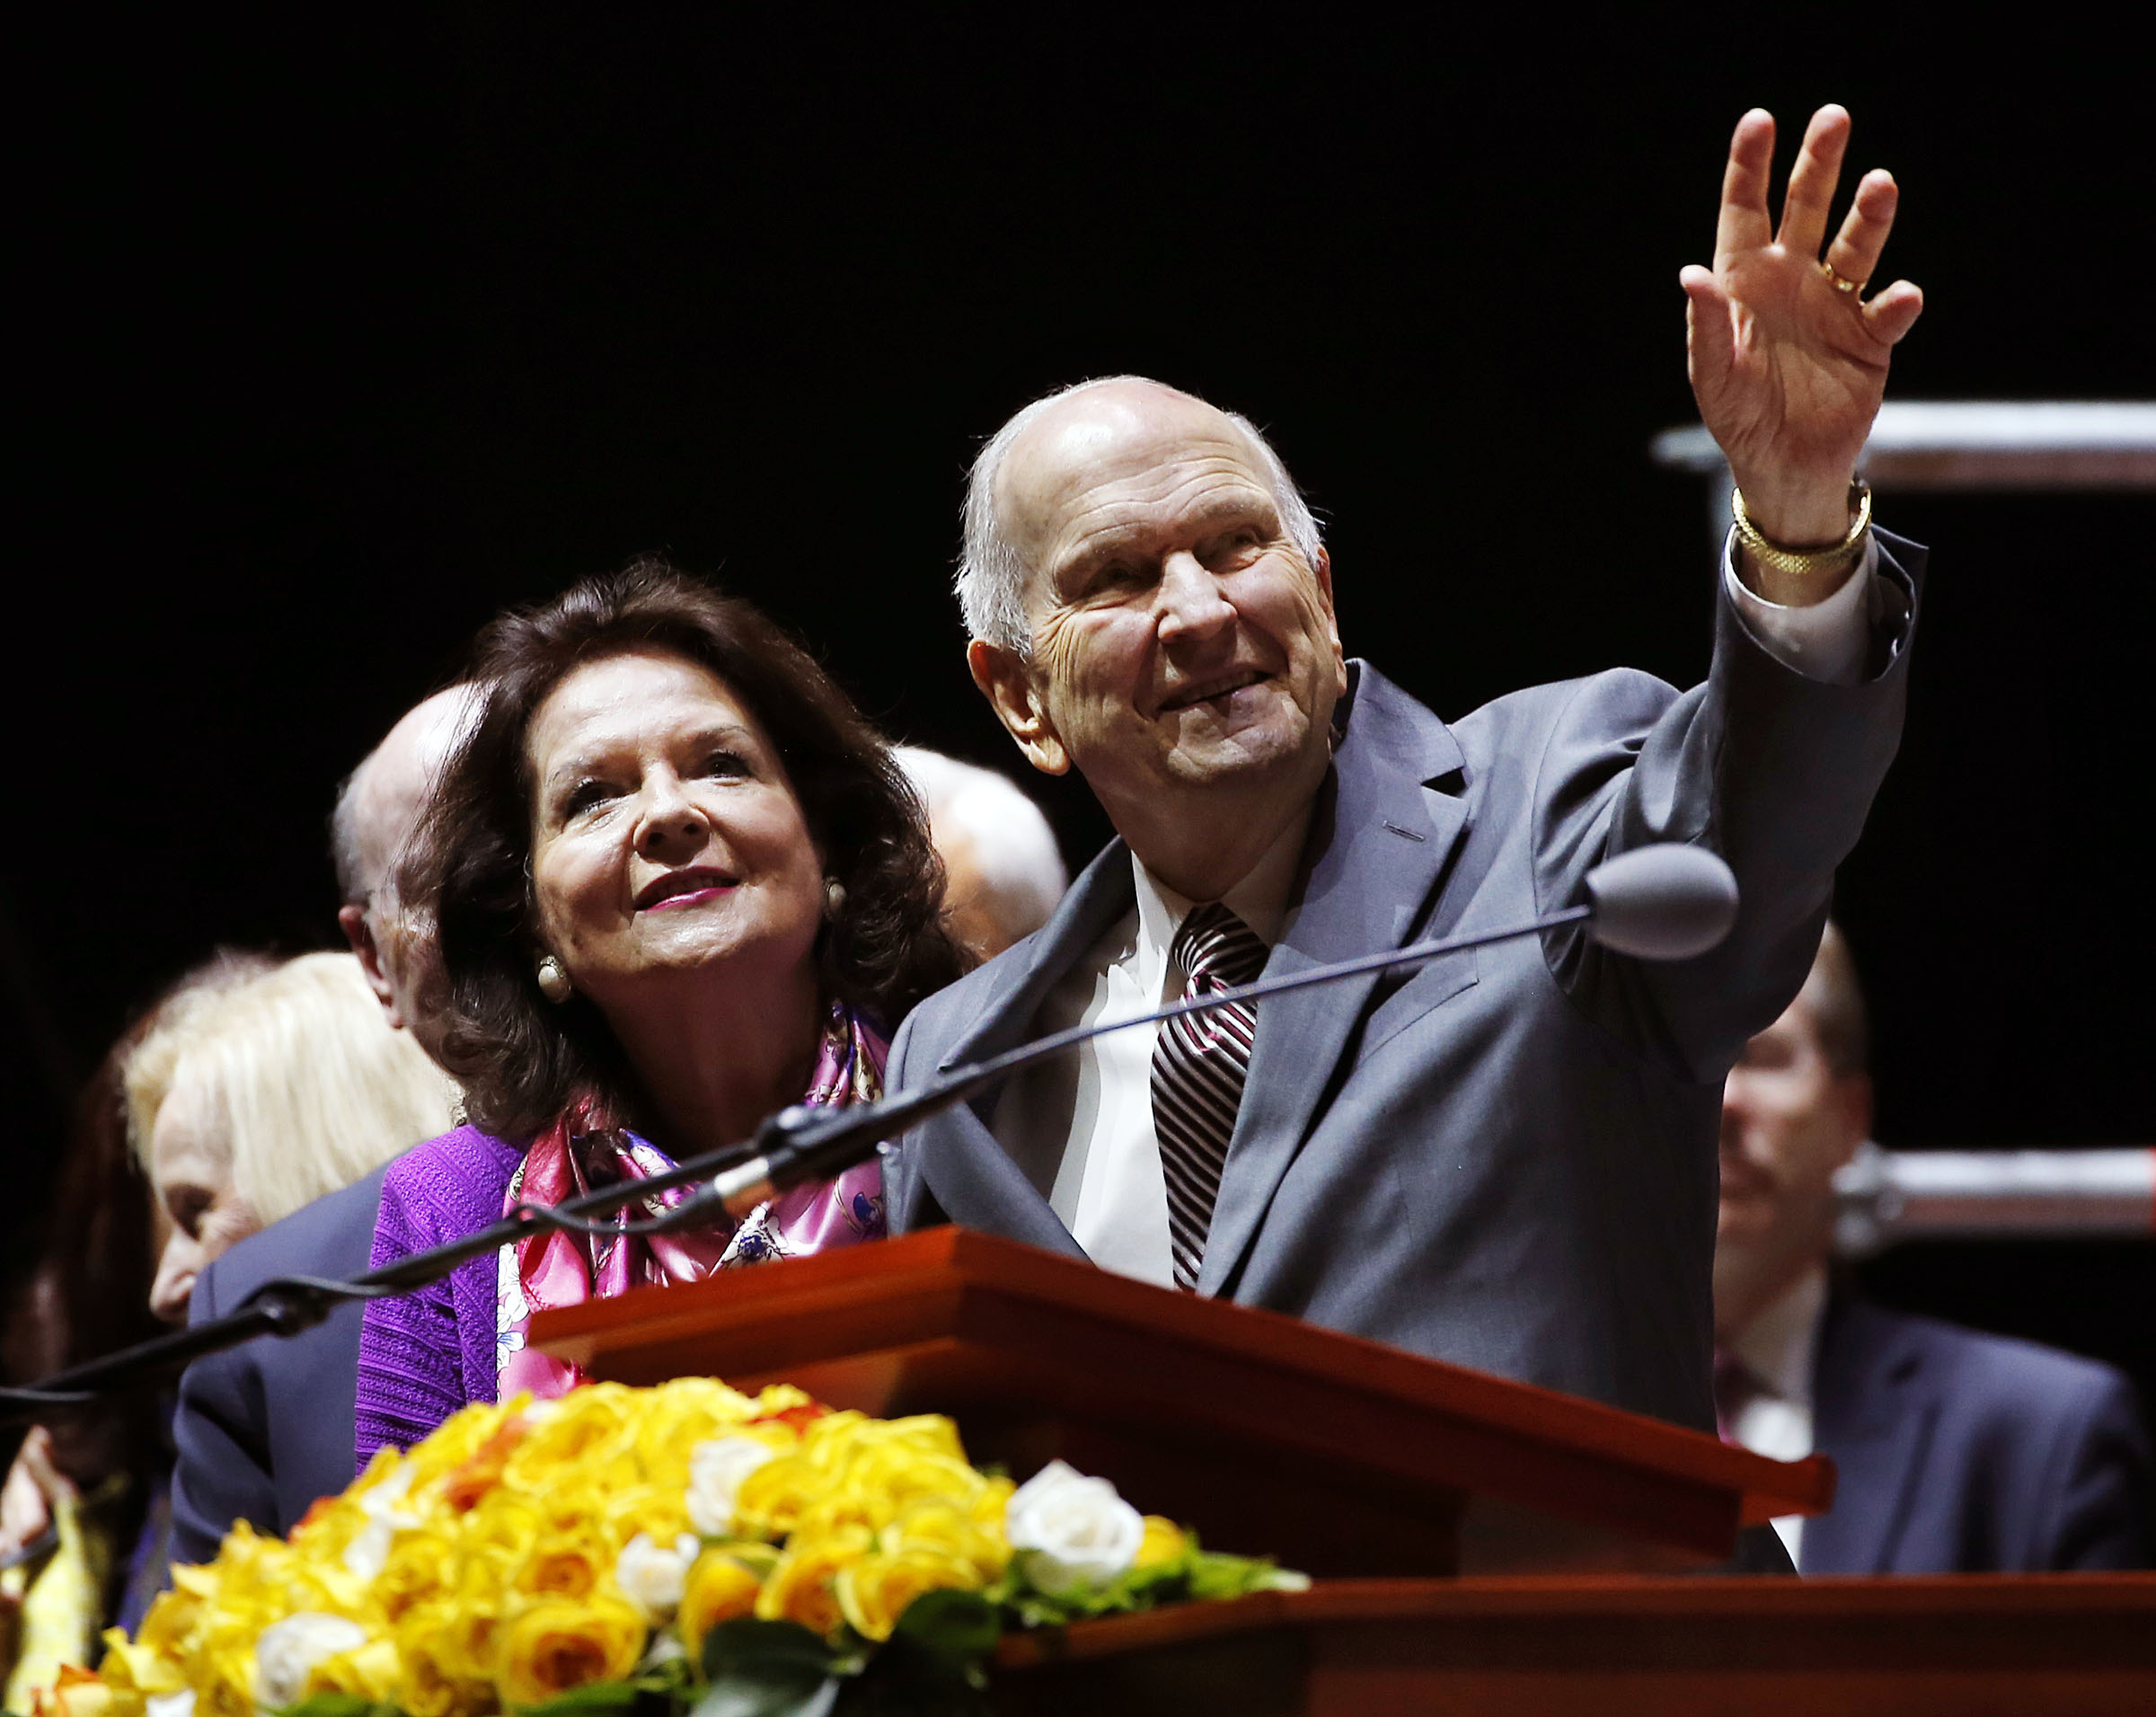 President Russell M. Nelson of The Church of Jesus Christ of Latter-day Saints and his wife, Sister Wendy Nelson, say goodbye at the conclusion of a Latin America Ministry Tour devotional in Bogota, Colombia on Sunday, Aug. 25, 2019.